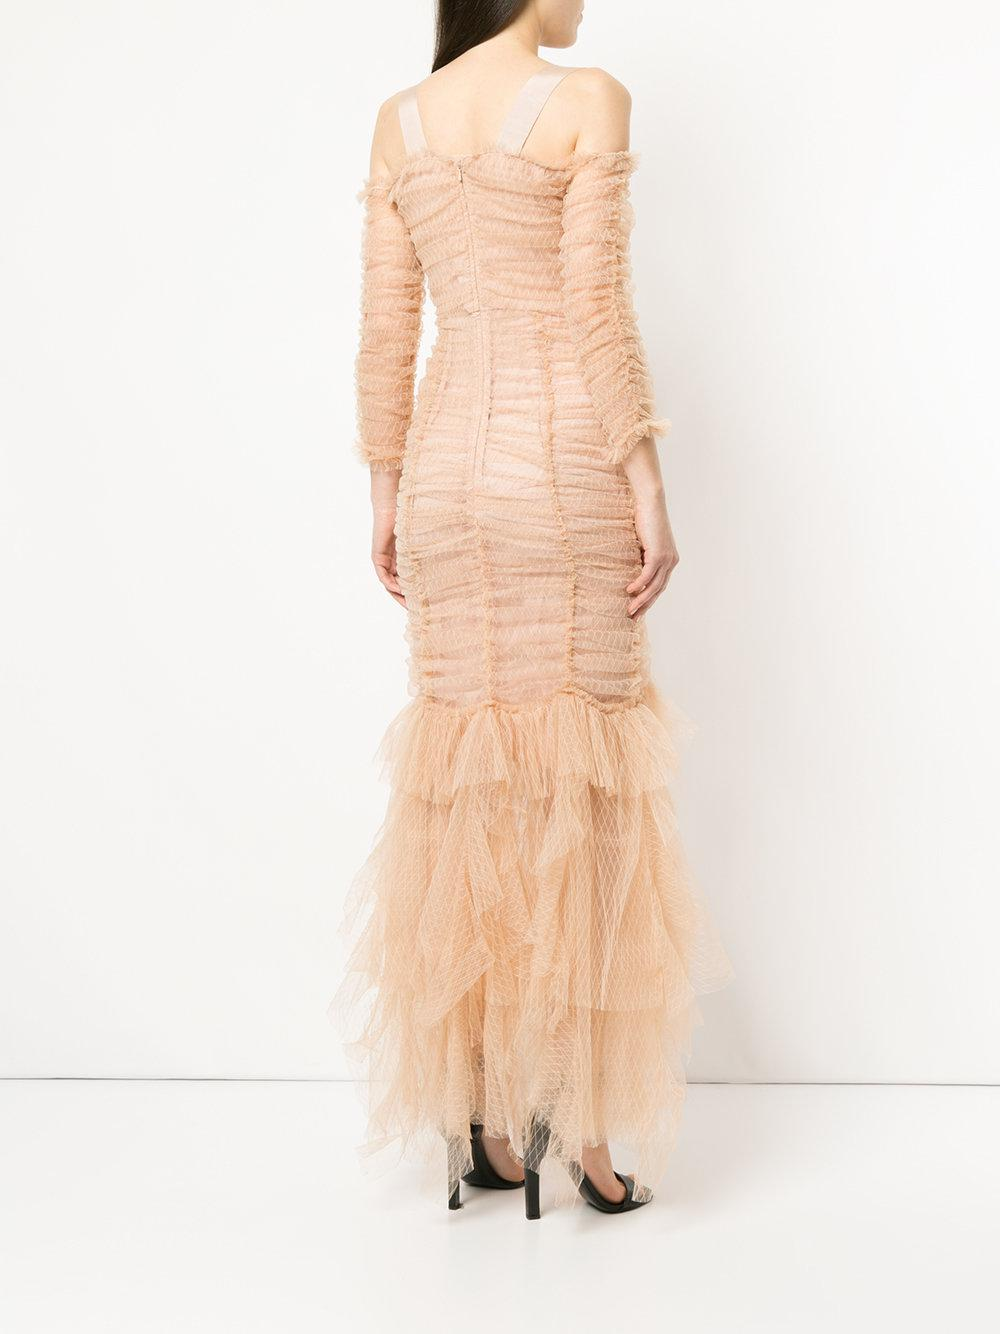 Unforgettable gown - Nude & Neutrals Alice McCall